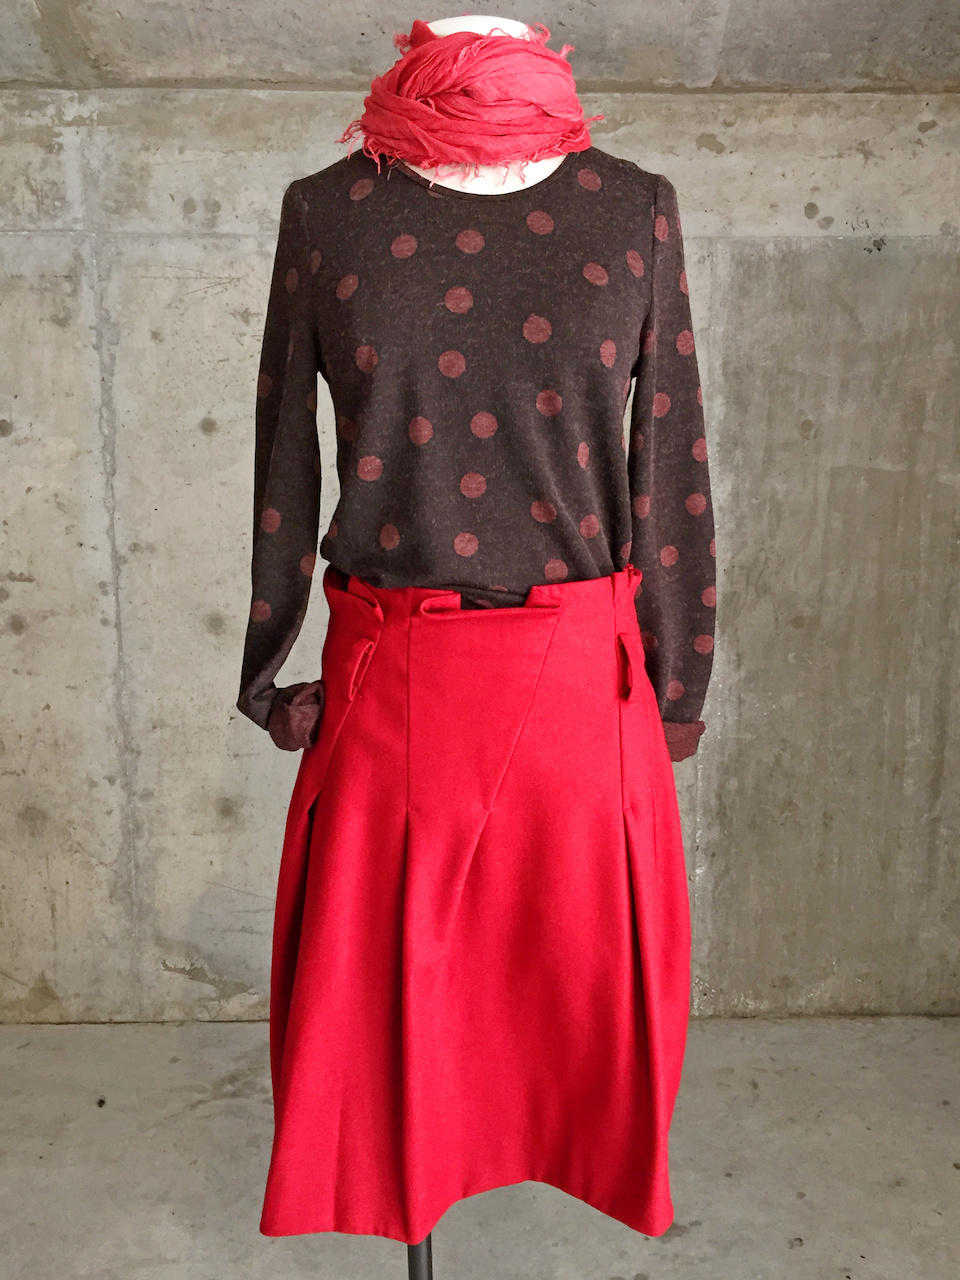 Lilith polka dot shirt red skirt StyleBlueprint Atlanta